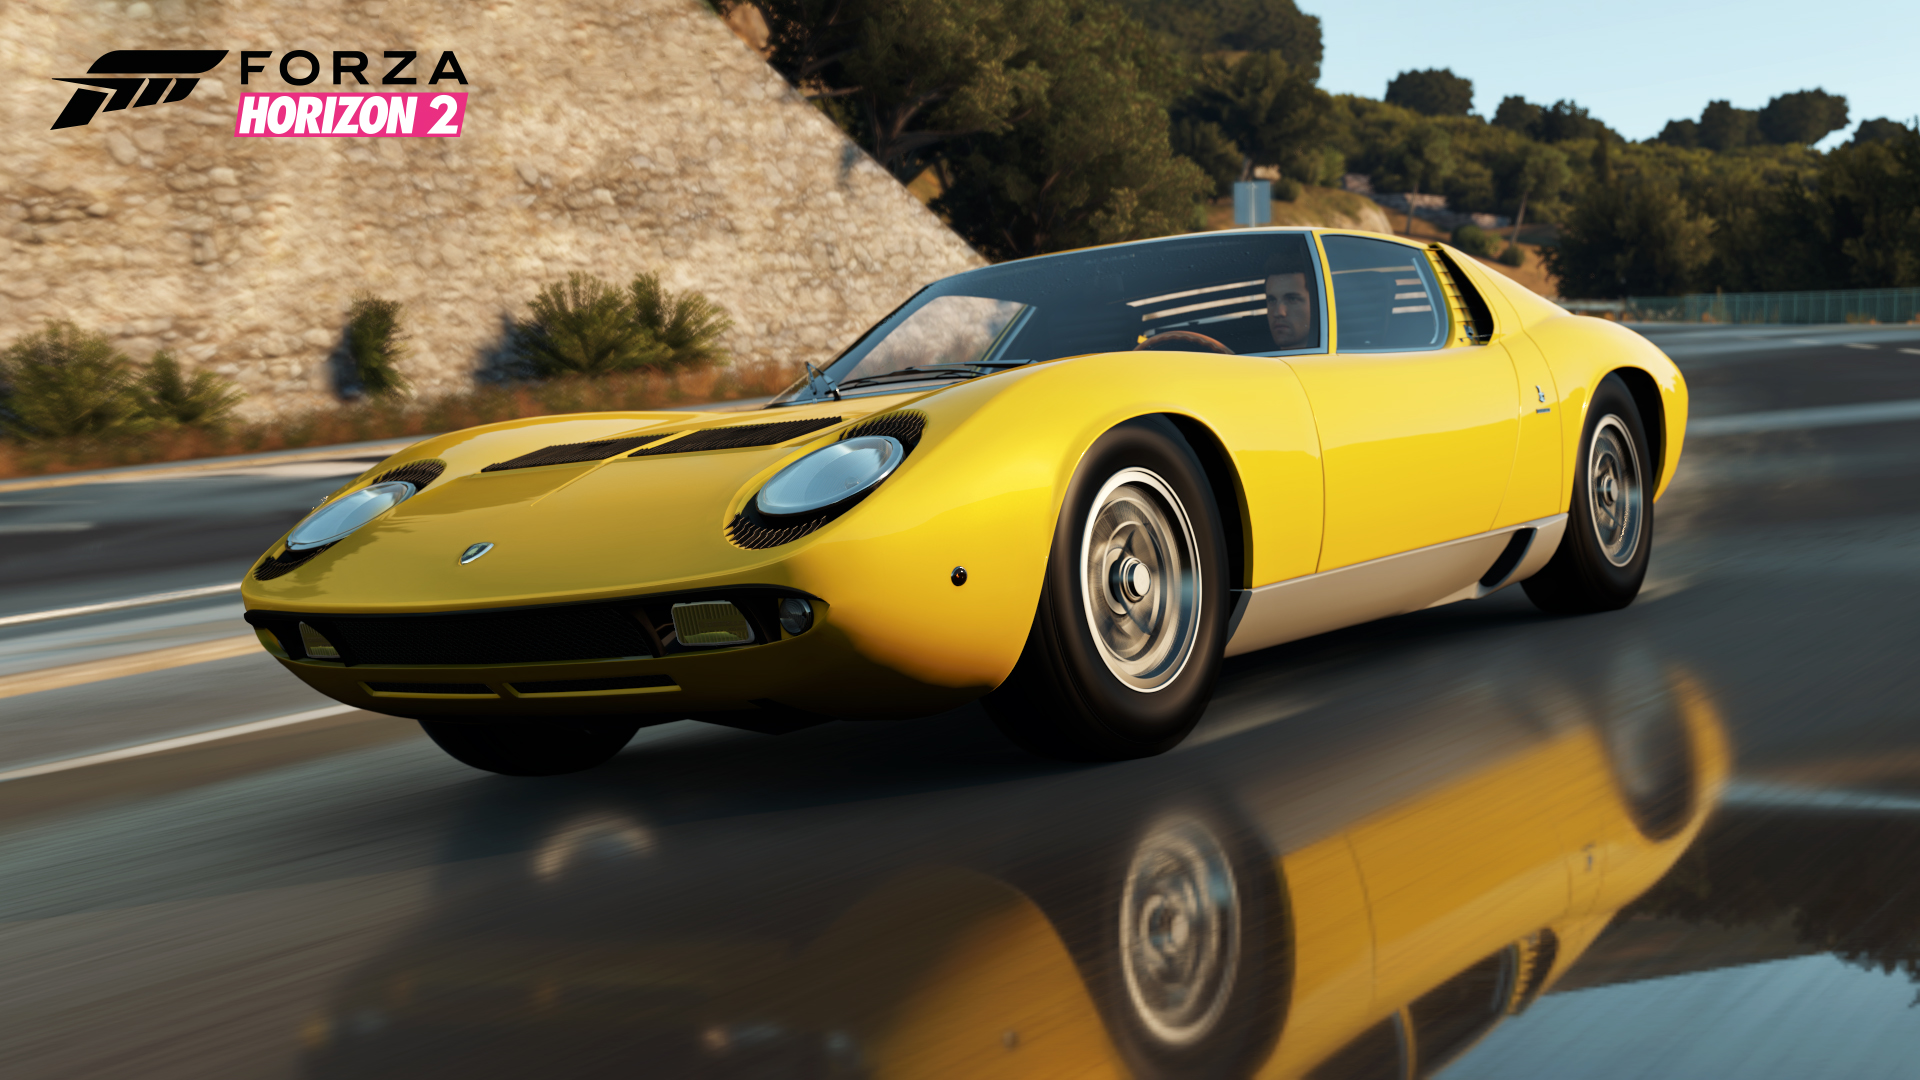 forza horizon 2 xbox one demo more cars achievements. Black Bedroom Furniture Sets. Home Design Ideas